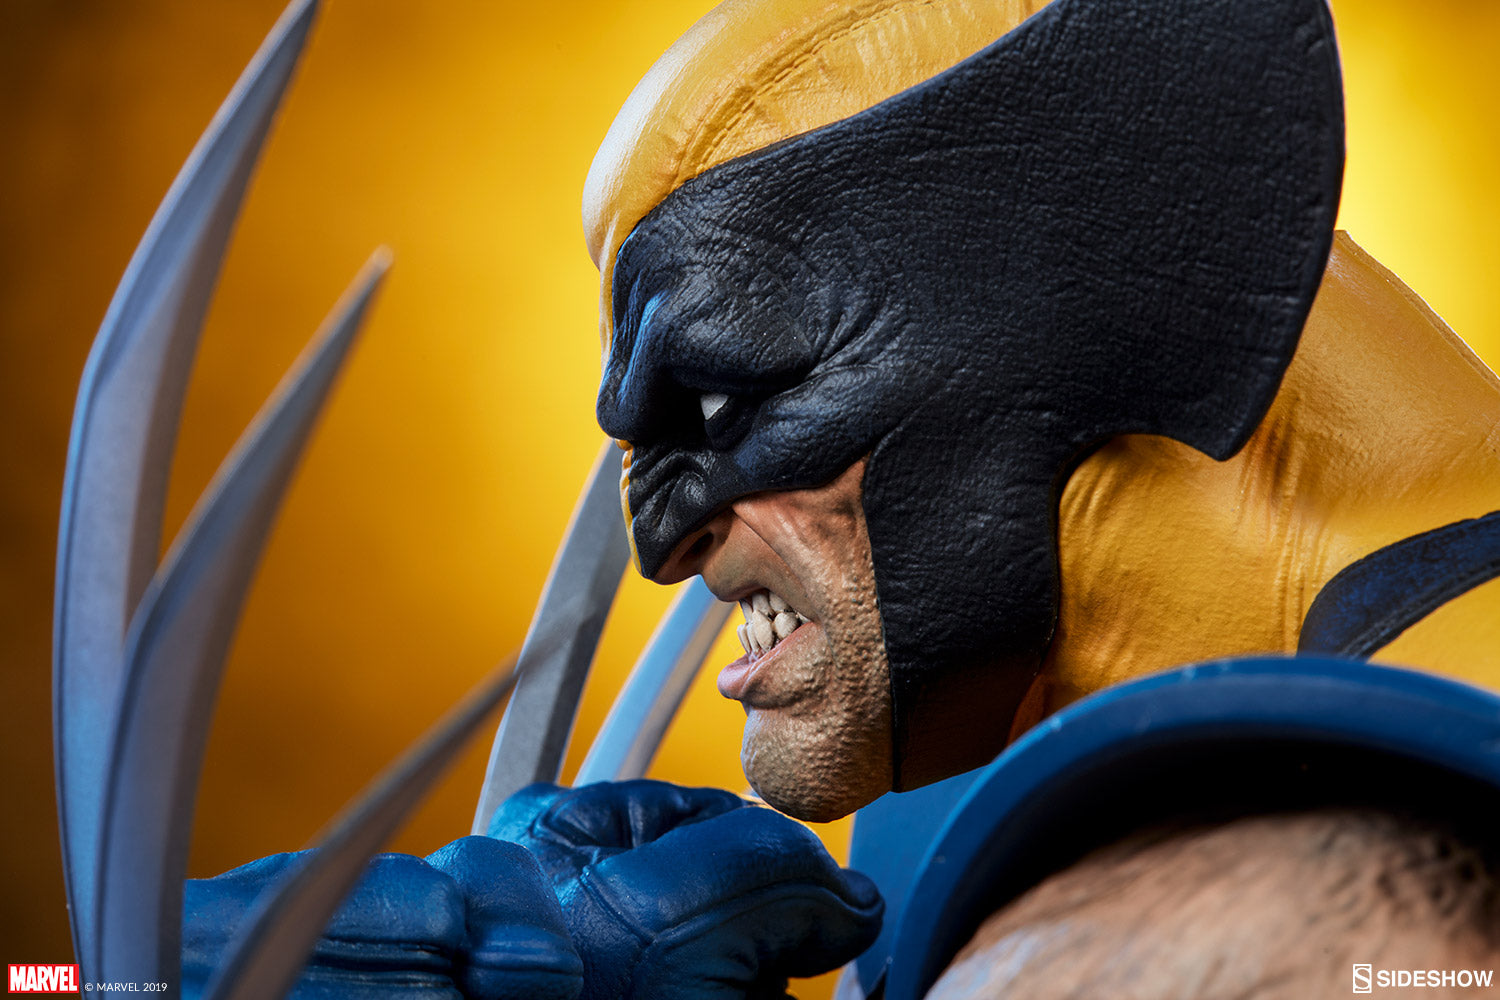 Sideshow Collectibles - Marvel - Wolverine Bust